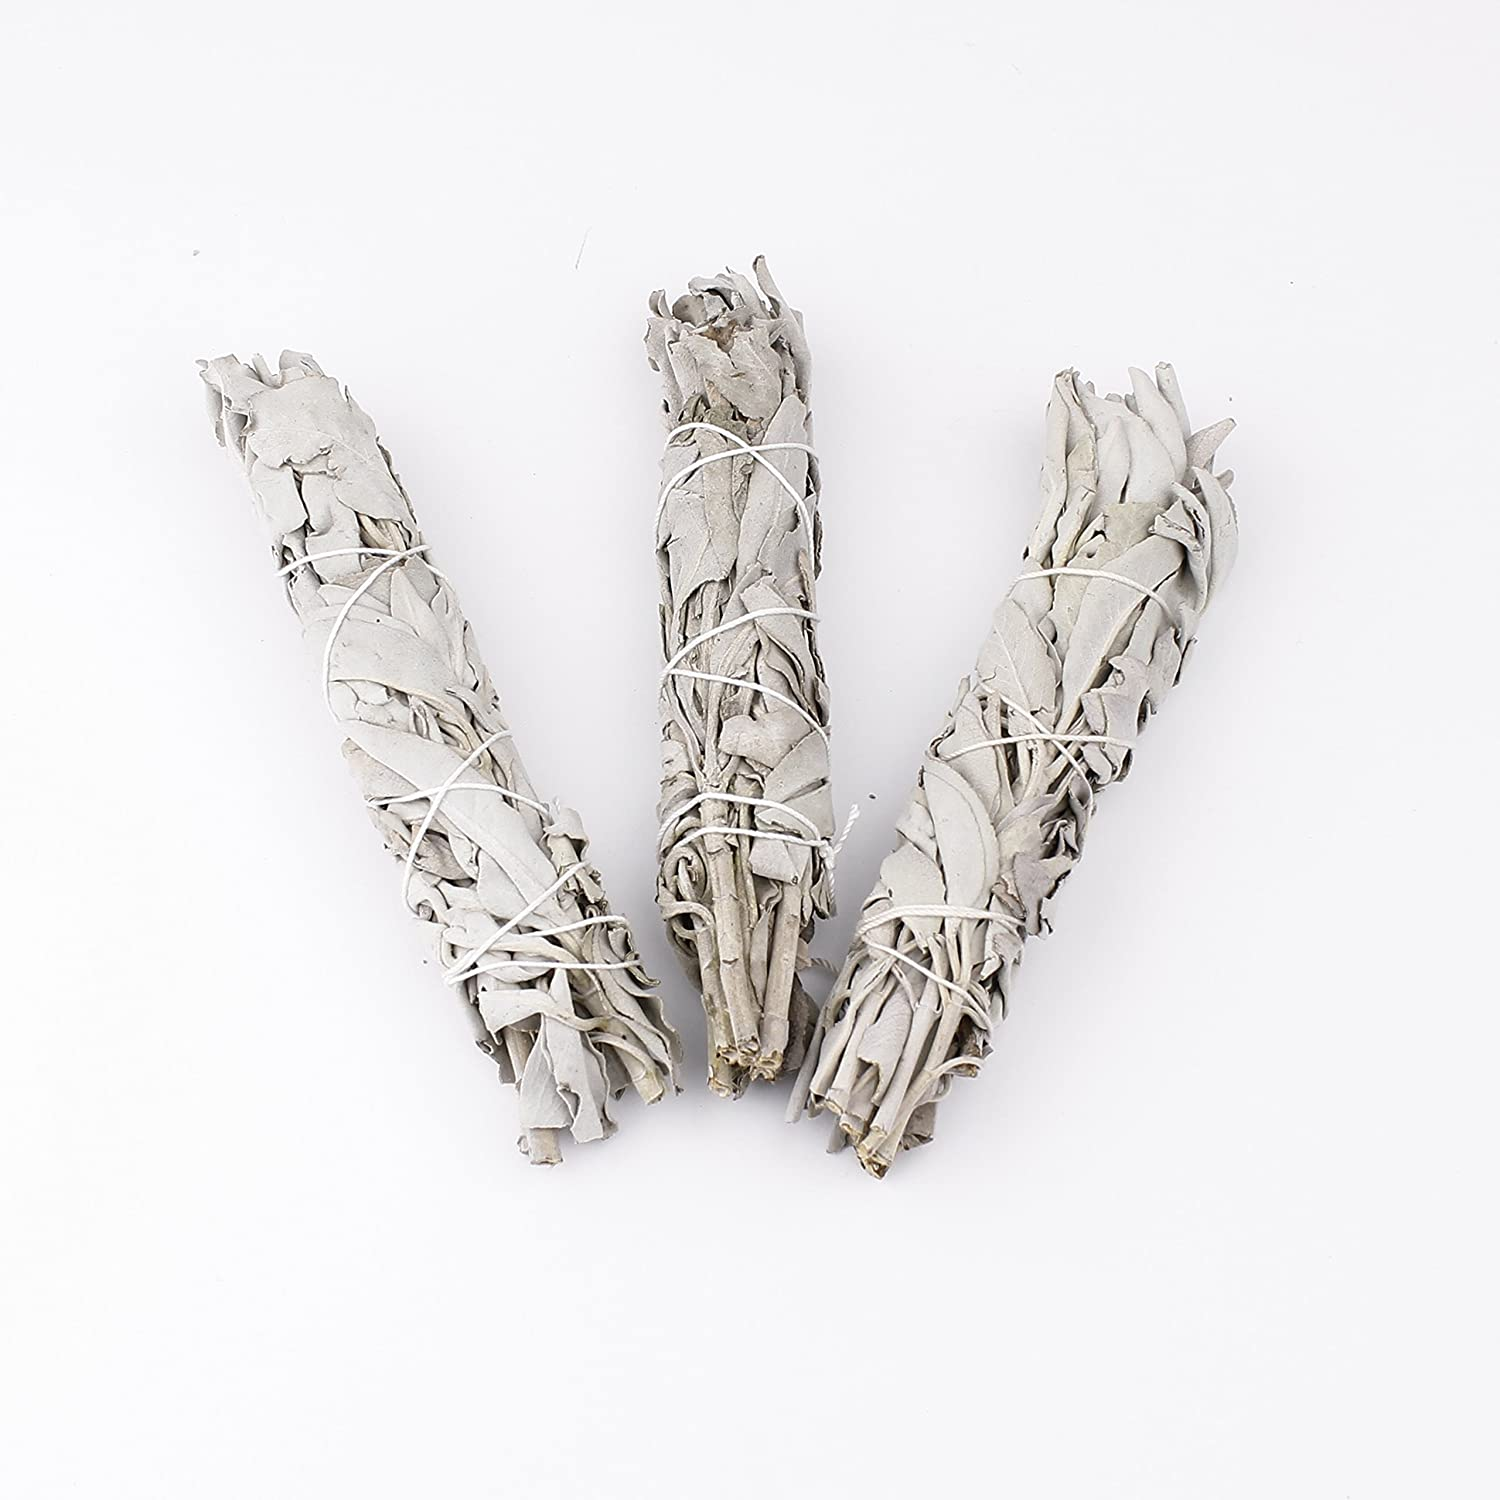 Heka Naturals Sage Smudge Sticks White Bundle Home Cleansing, Smudging & Blessing: Sage Bundle New Age Chakra Spiritual White California Sourced Authentic Native American Tradition (3)